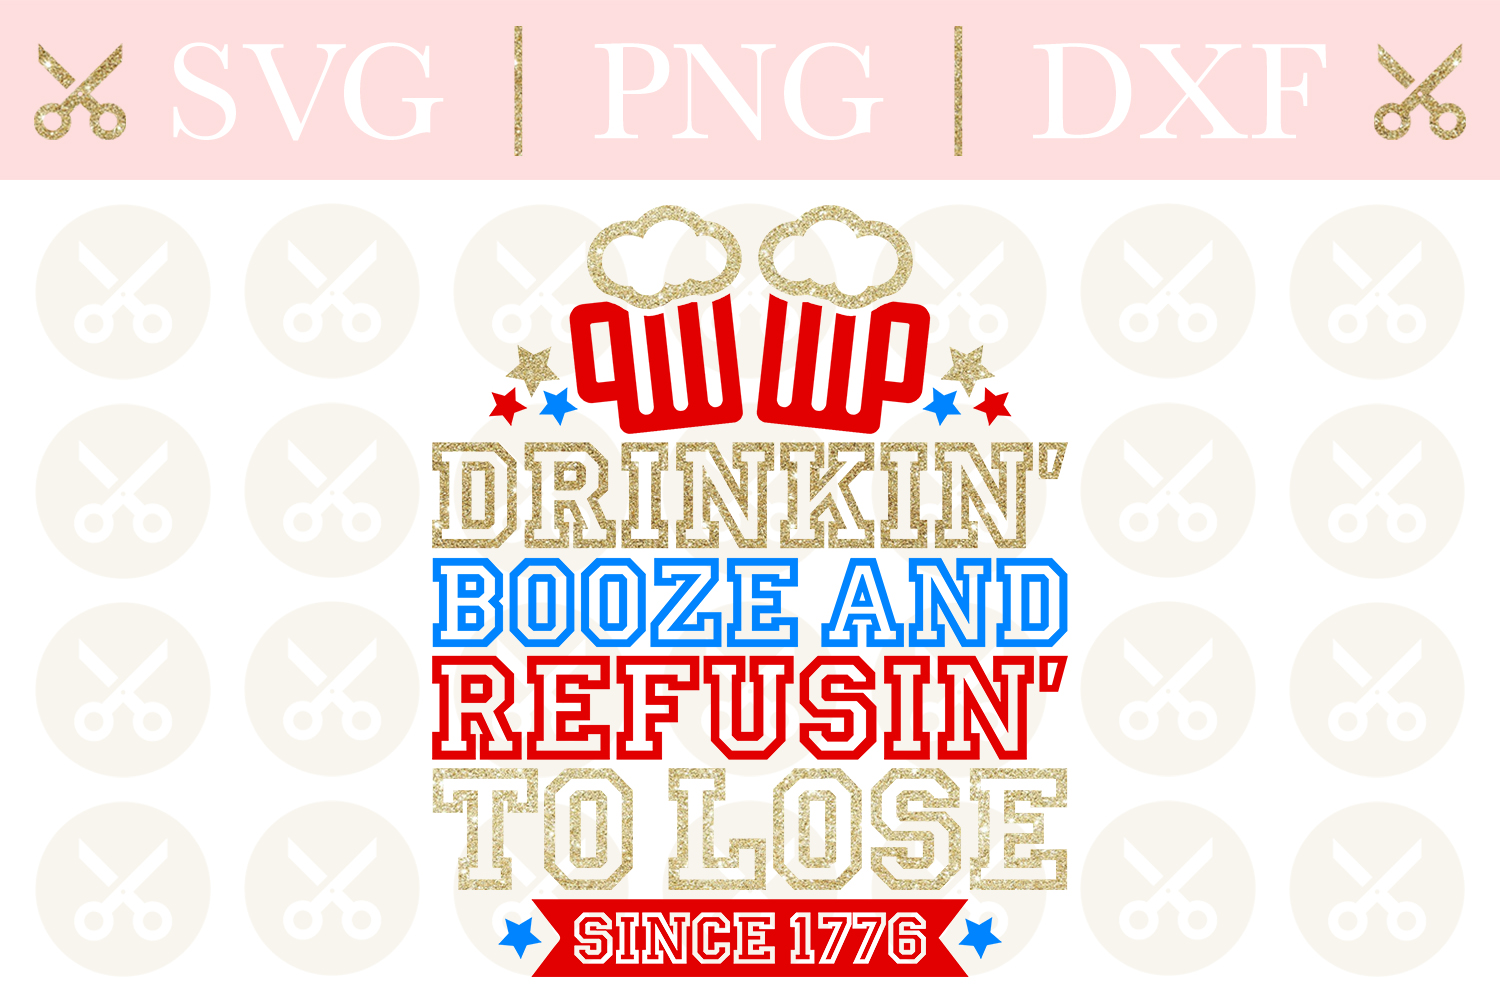 4th Of July Svg Drinkin' Booze And Refusin' To Lose Svg example image 1